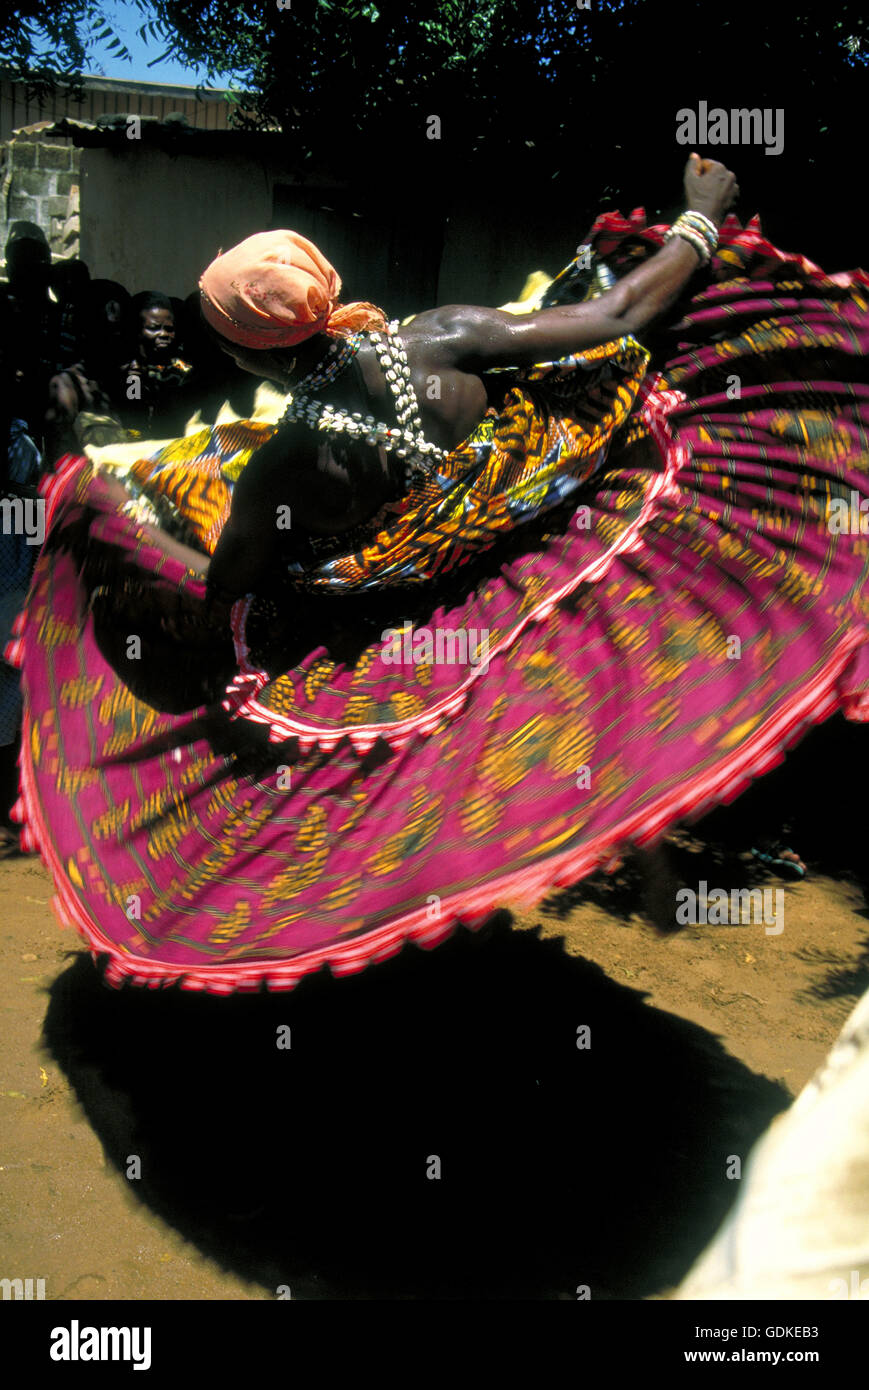 A voodoo priest in trance dances in whirling circles, as he